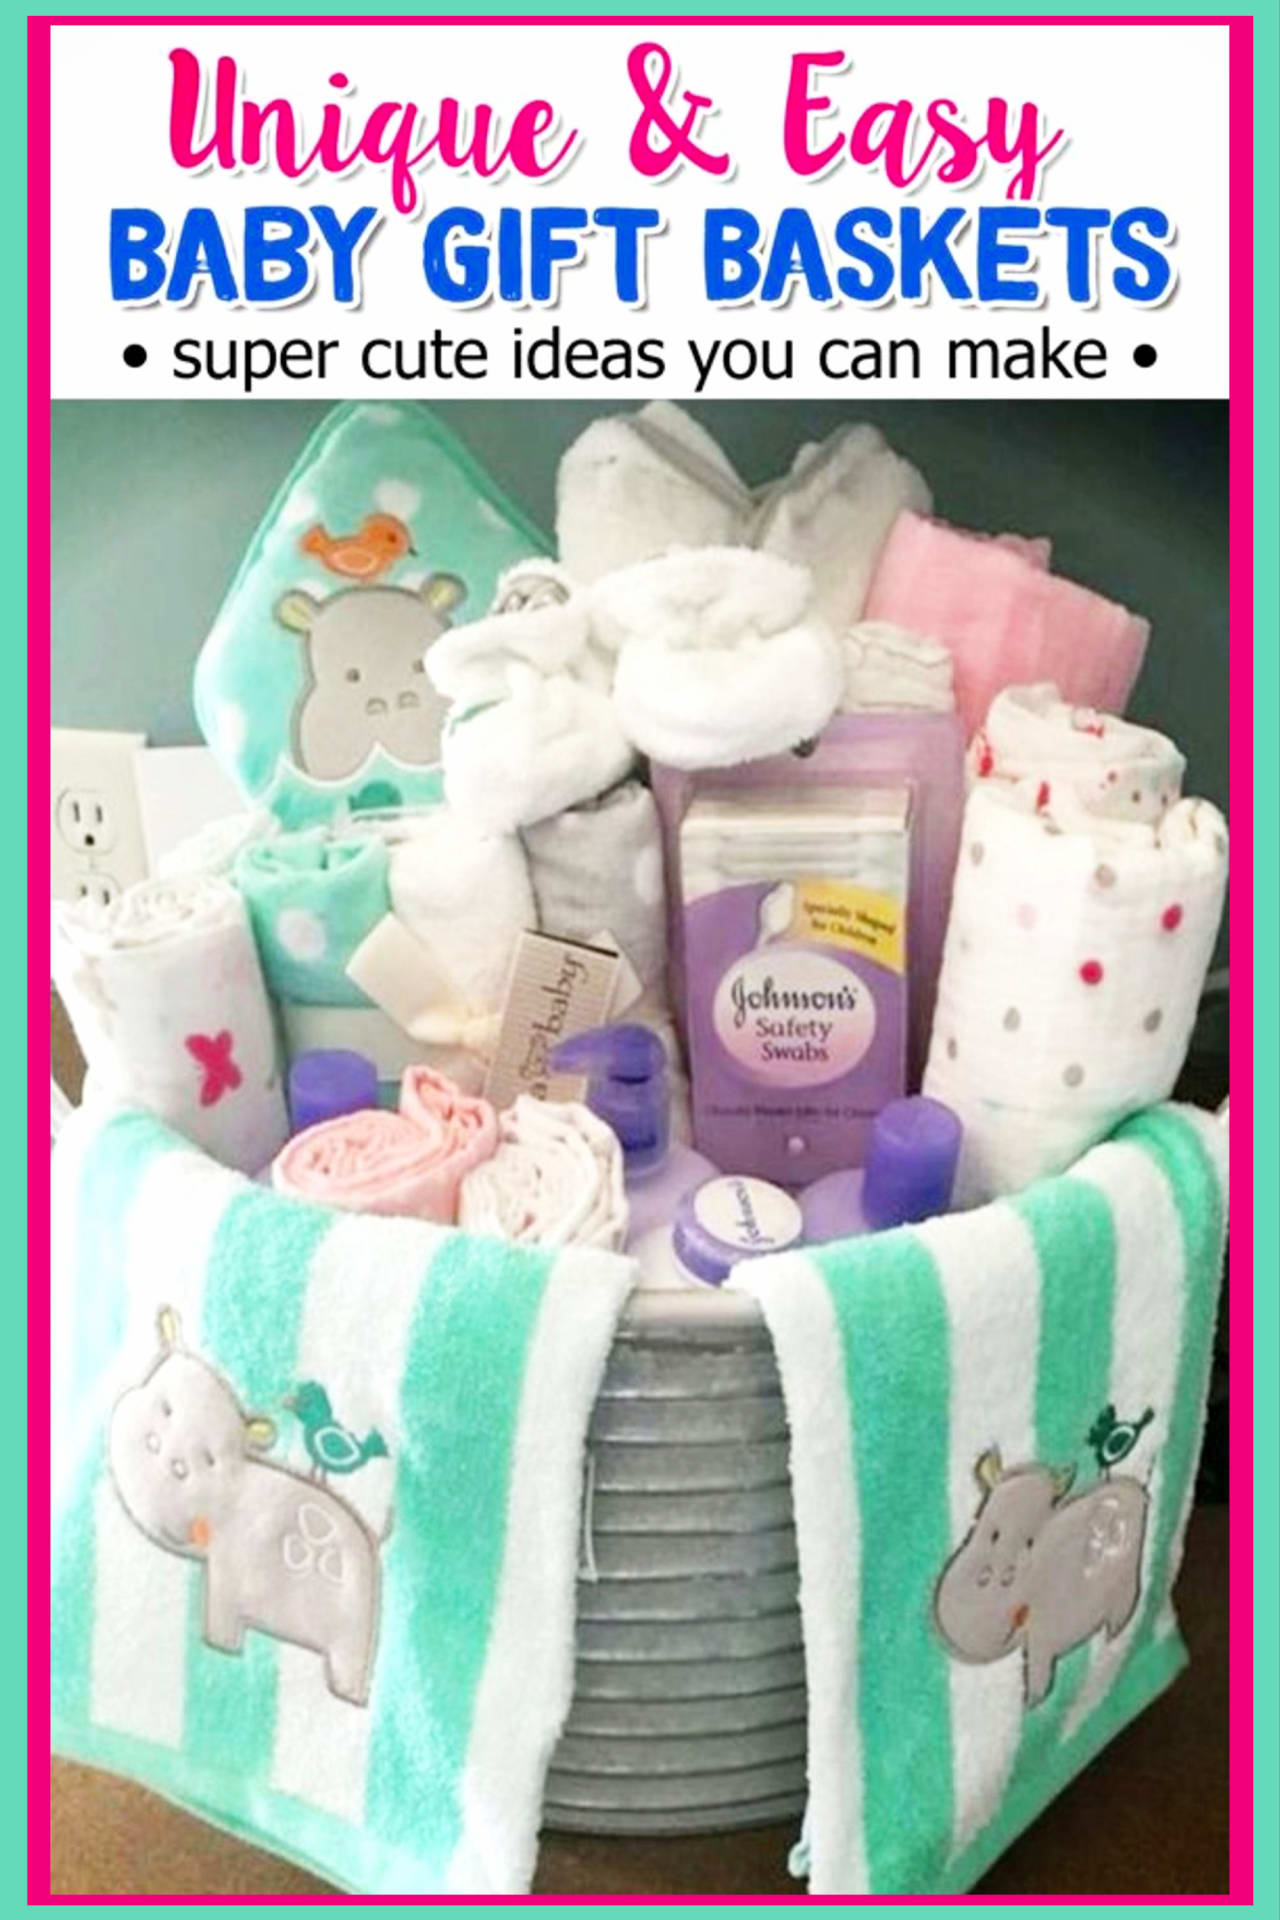 Baby shower gift ideas on a budget - cheap homemade baby shower gifts and easy DIY baby shower gift baskets to make for boys, for girls or for gender unknown (gender neutral) - cute, unique and creative baby shower gifts on a budget - baby shower gift baskets, baby shower bathtub gift baskets and more creative and inexpensive baby shower gifts to make